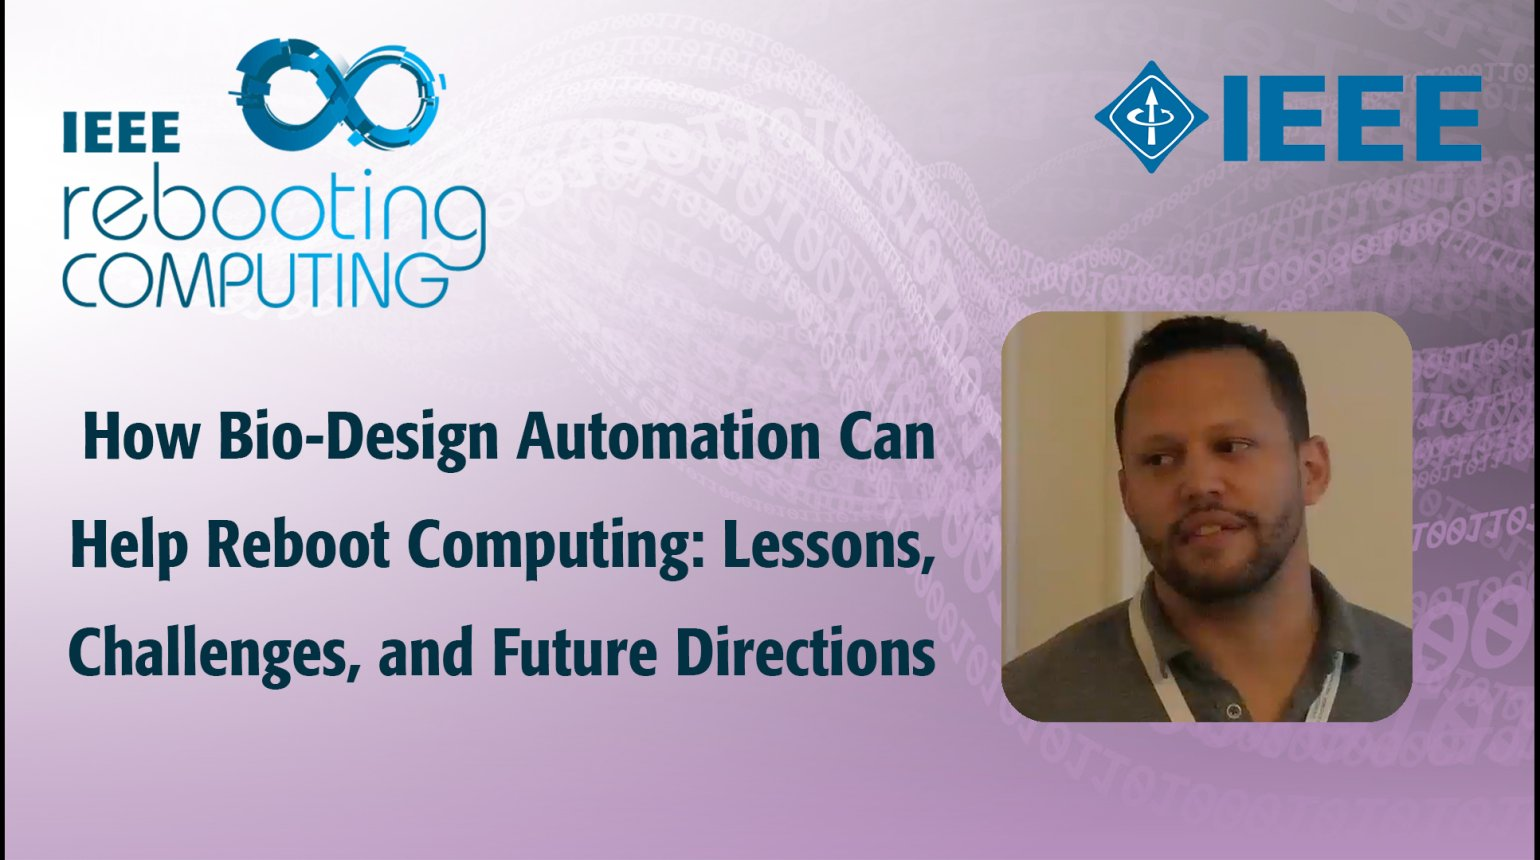 How Bio-Design Automation Can Help Reboot Computing: Lessons, Challenges, and Future Directions - IEEE Rebooting Computing 2017